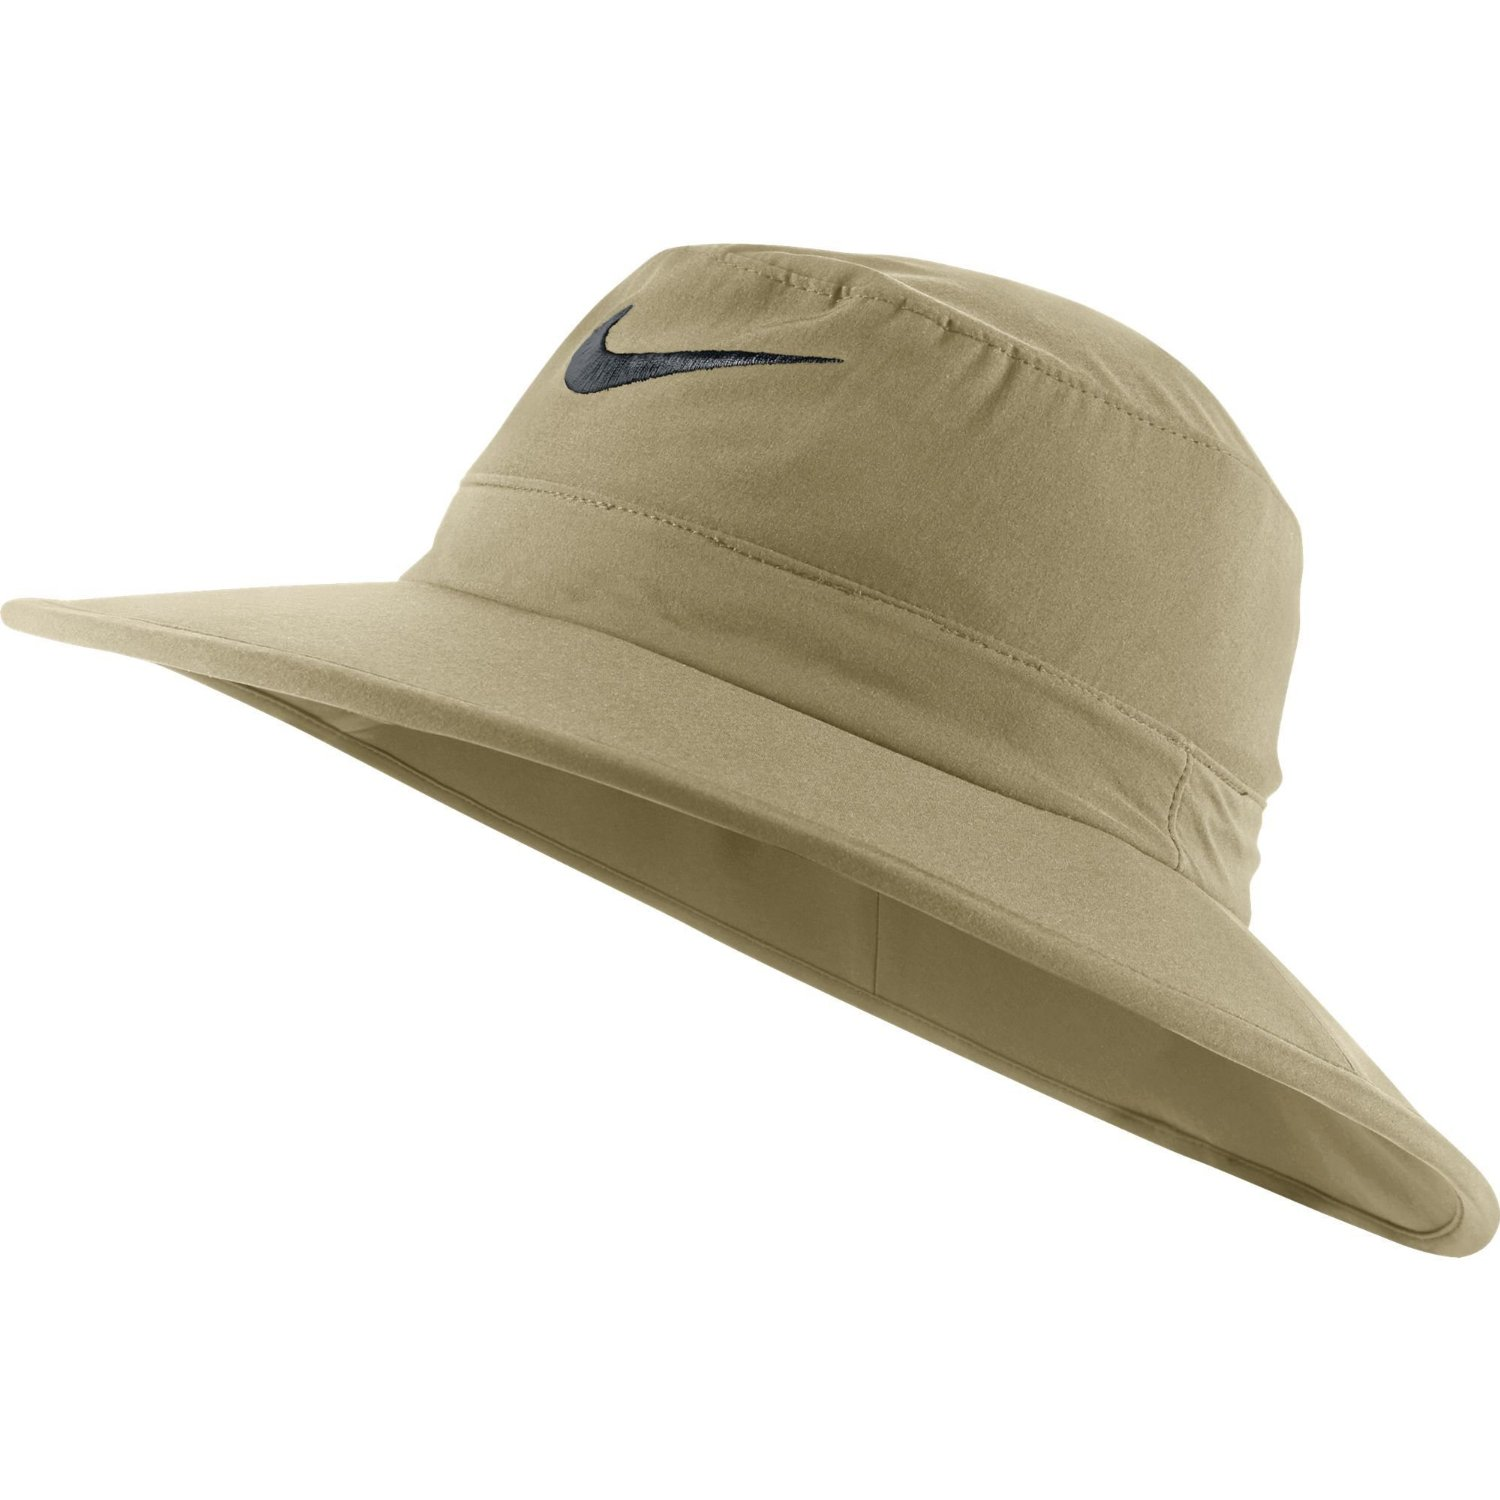 f14ba9ec947 Get Quotations · NEW Nike Sun Bucket Hat Khaki Black Fitted M L Fitted Hat  Cap